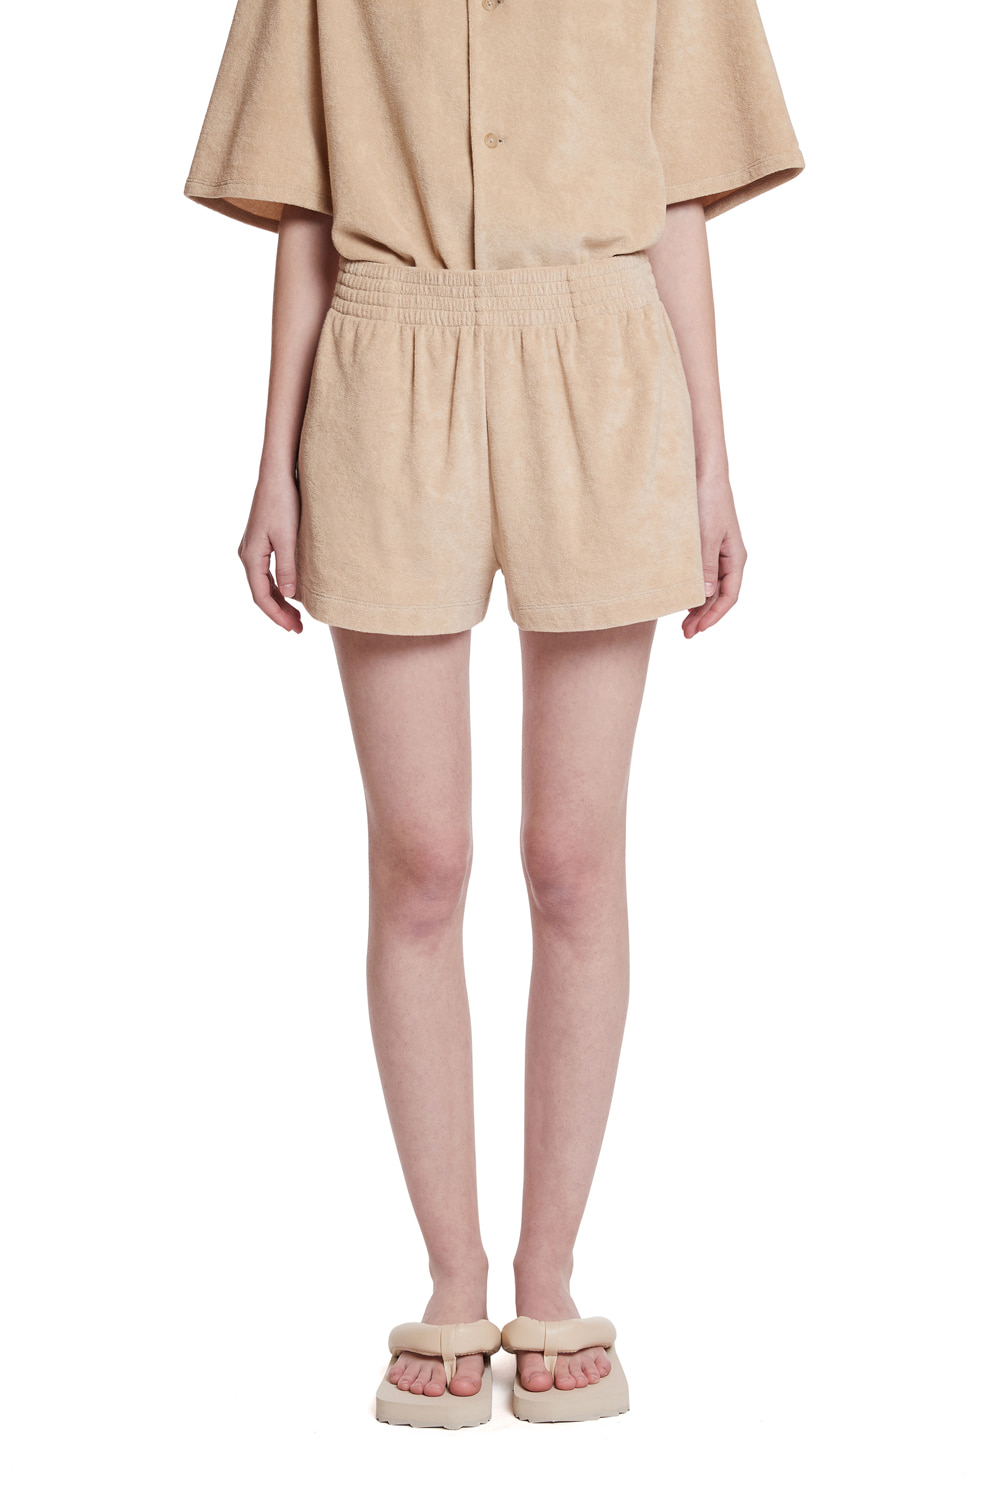 Terry Cotton Short Pant_(For Women)